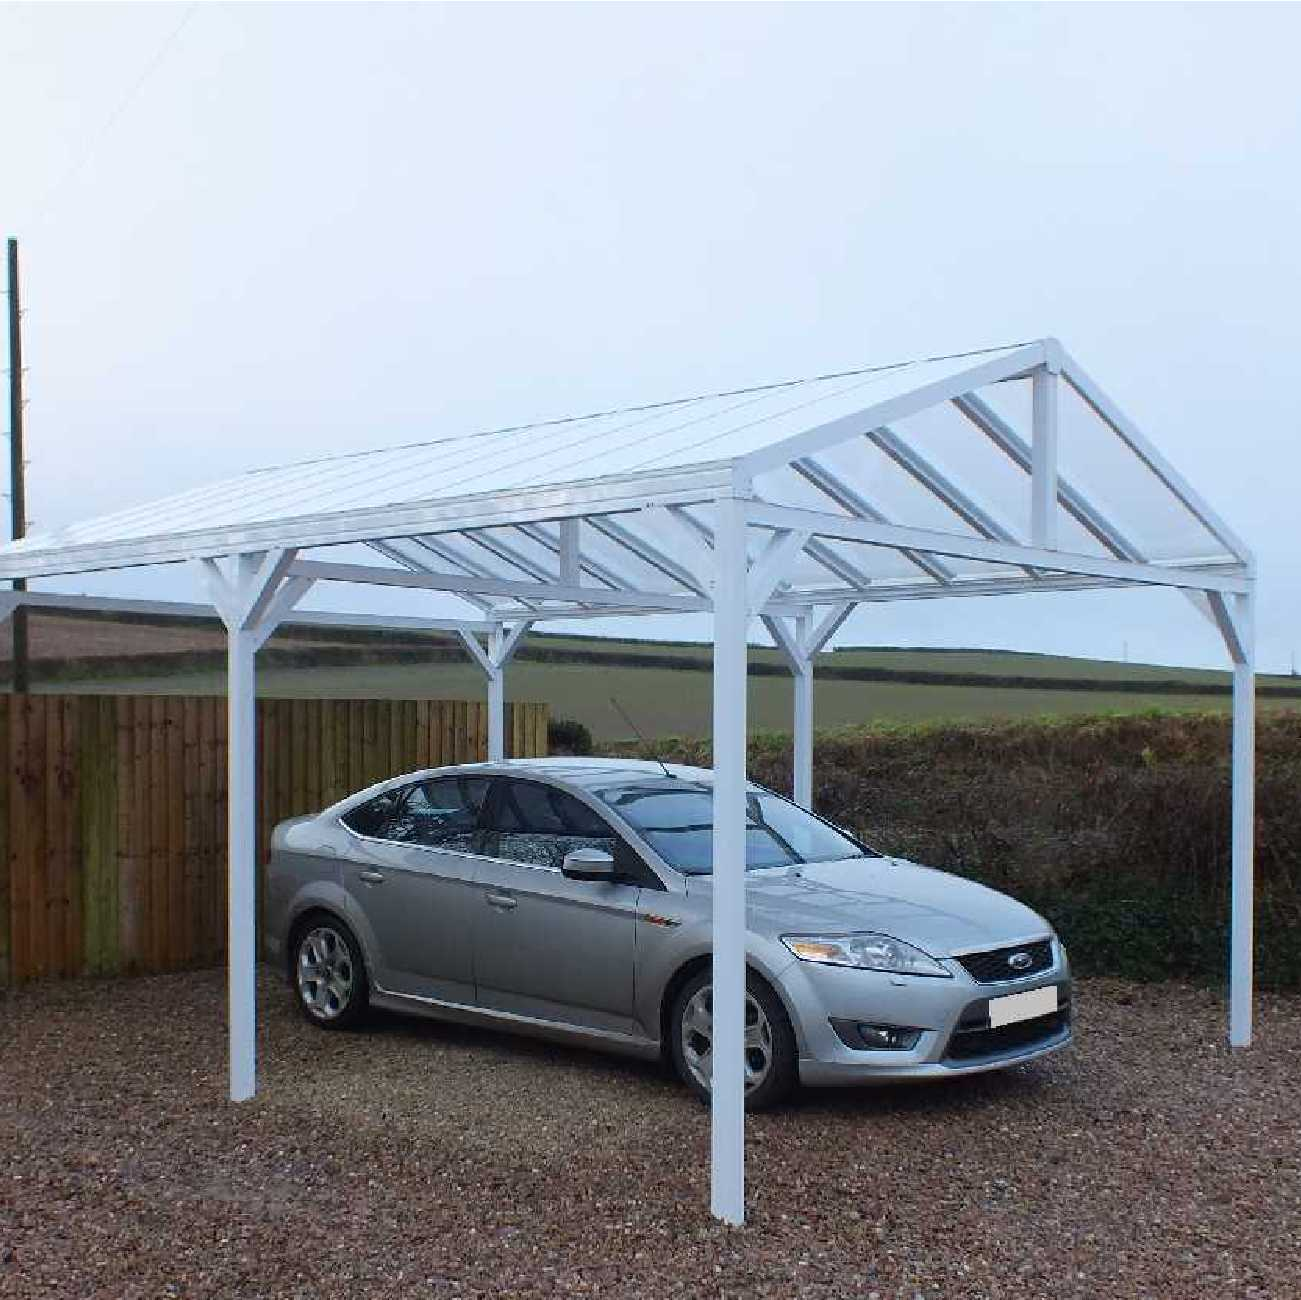 Affordable Omega Smart Free-Standing, Gable-Roof (type 1) Canopy with 16mm Polycarbonate Glazing - 5.2m (W) x 4.0m (P), (6) Supporting Posts